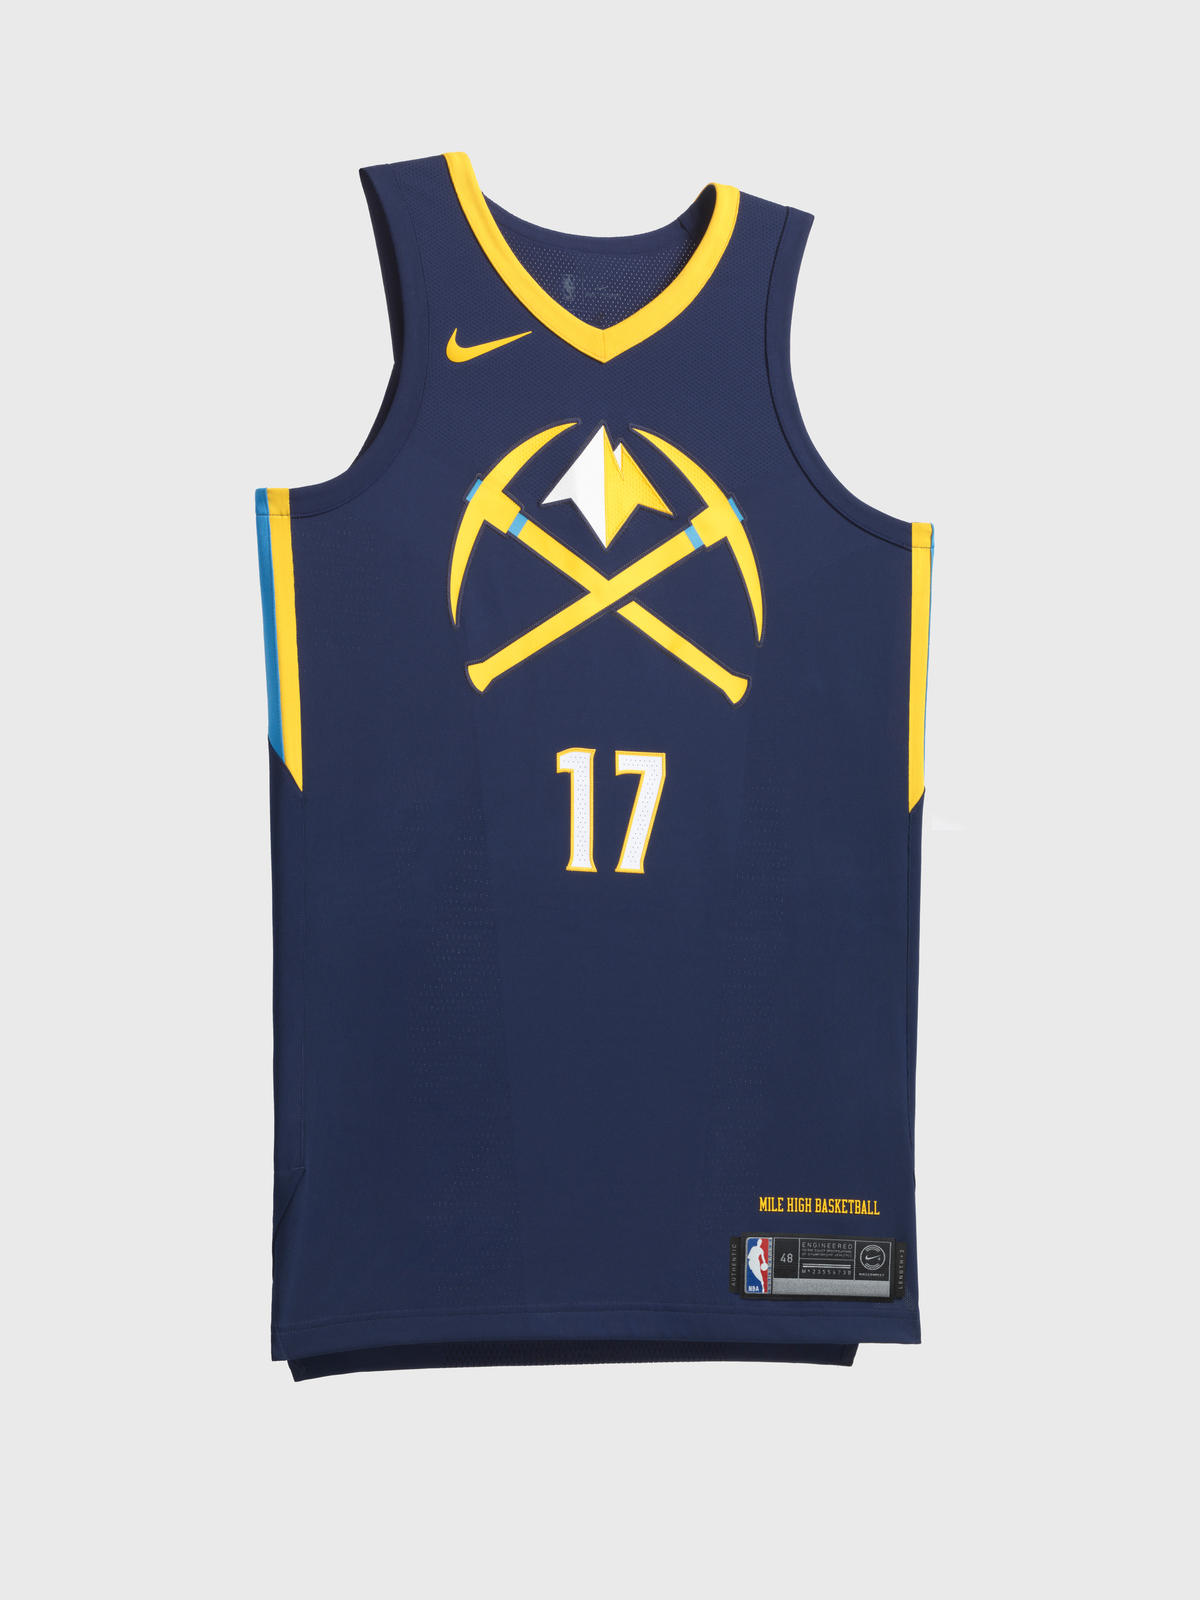 Nike Unveils New NBA City Edition Jerseys - WearTesters